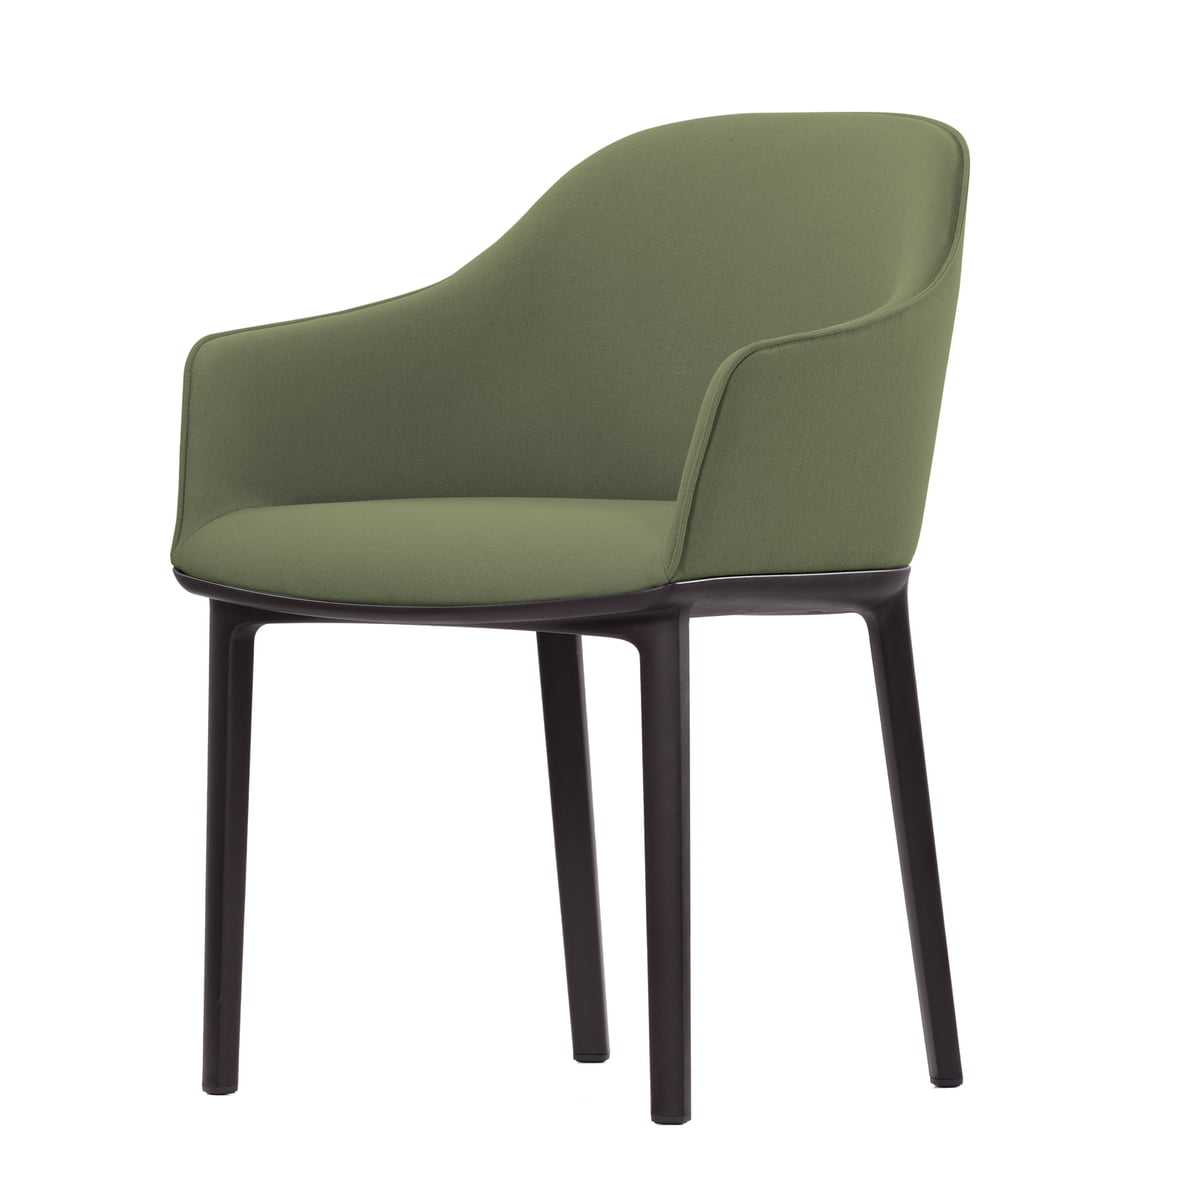 The Softshell Chair by Vitra in the shop